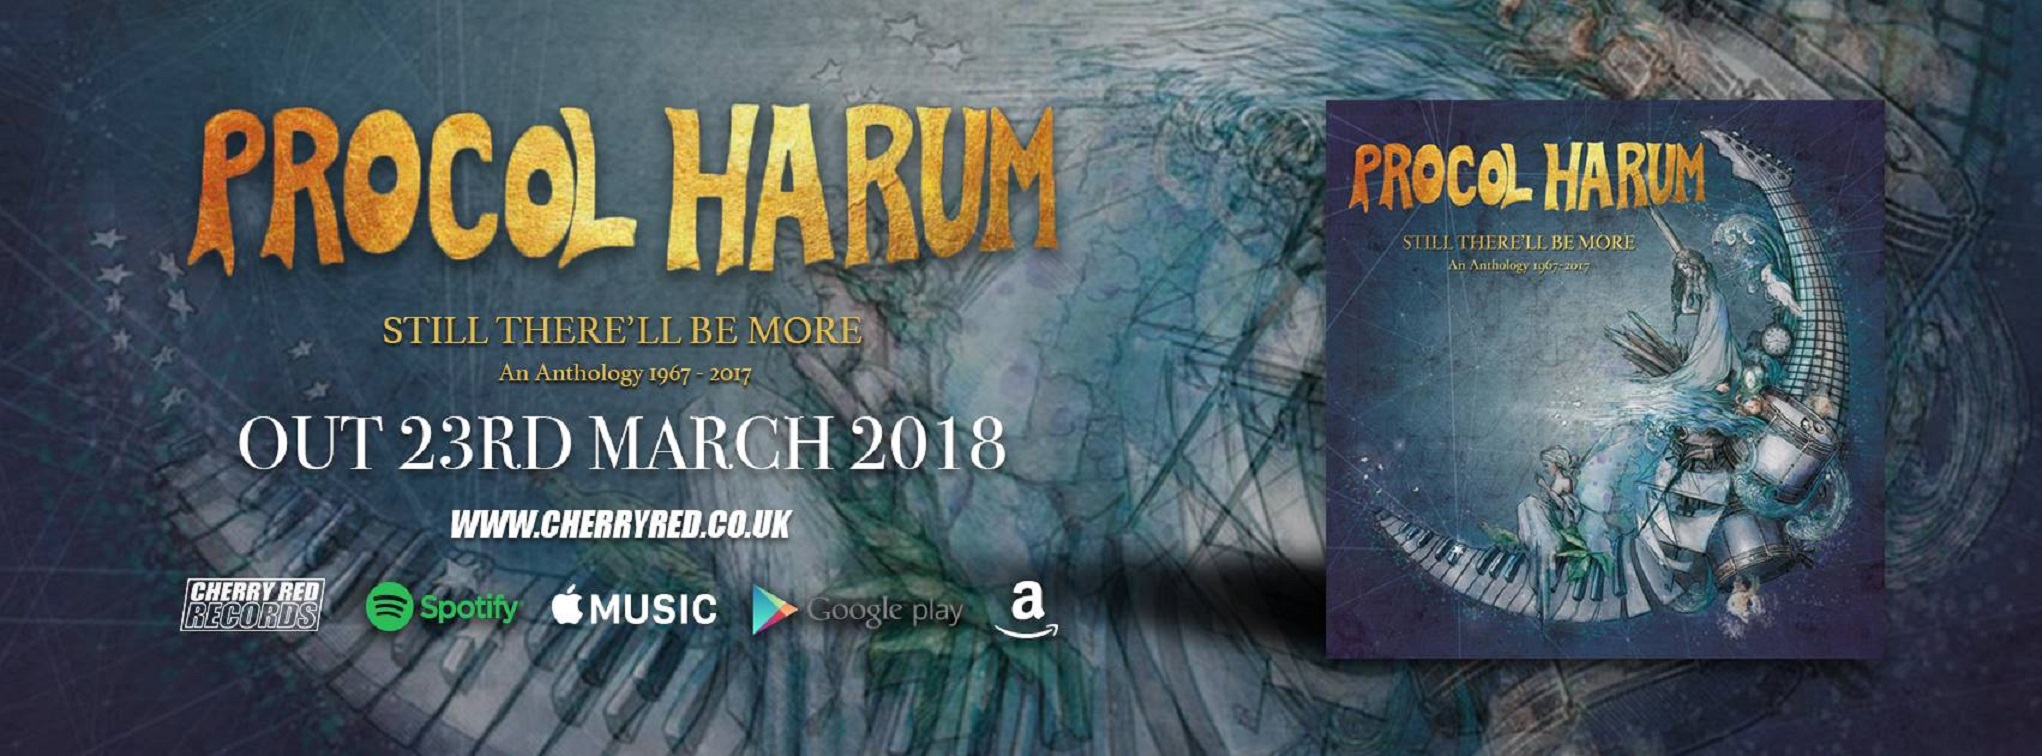 Procol Harum Still There'll Be More: An Anthology 1967-2017 due 3/23/18